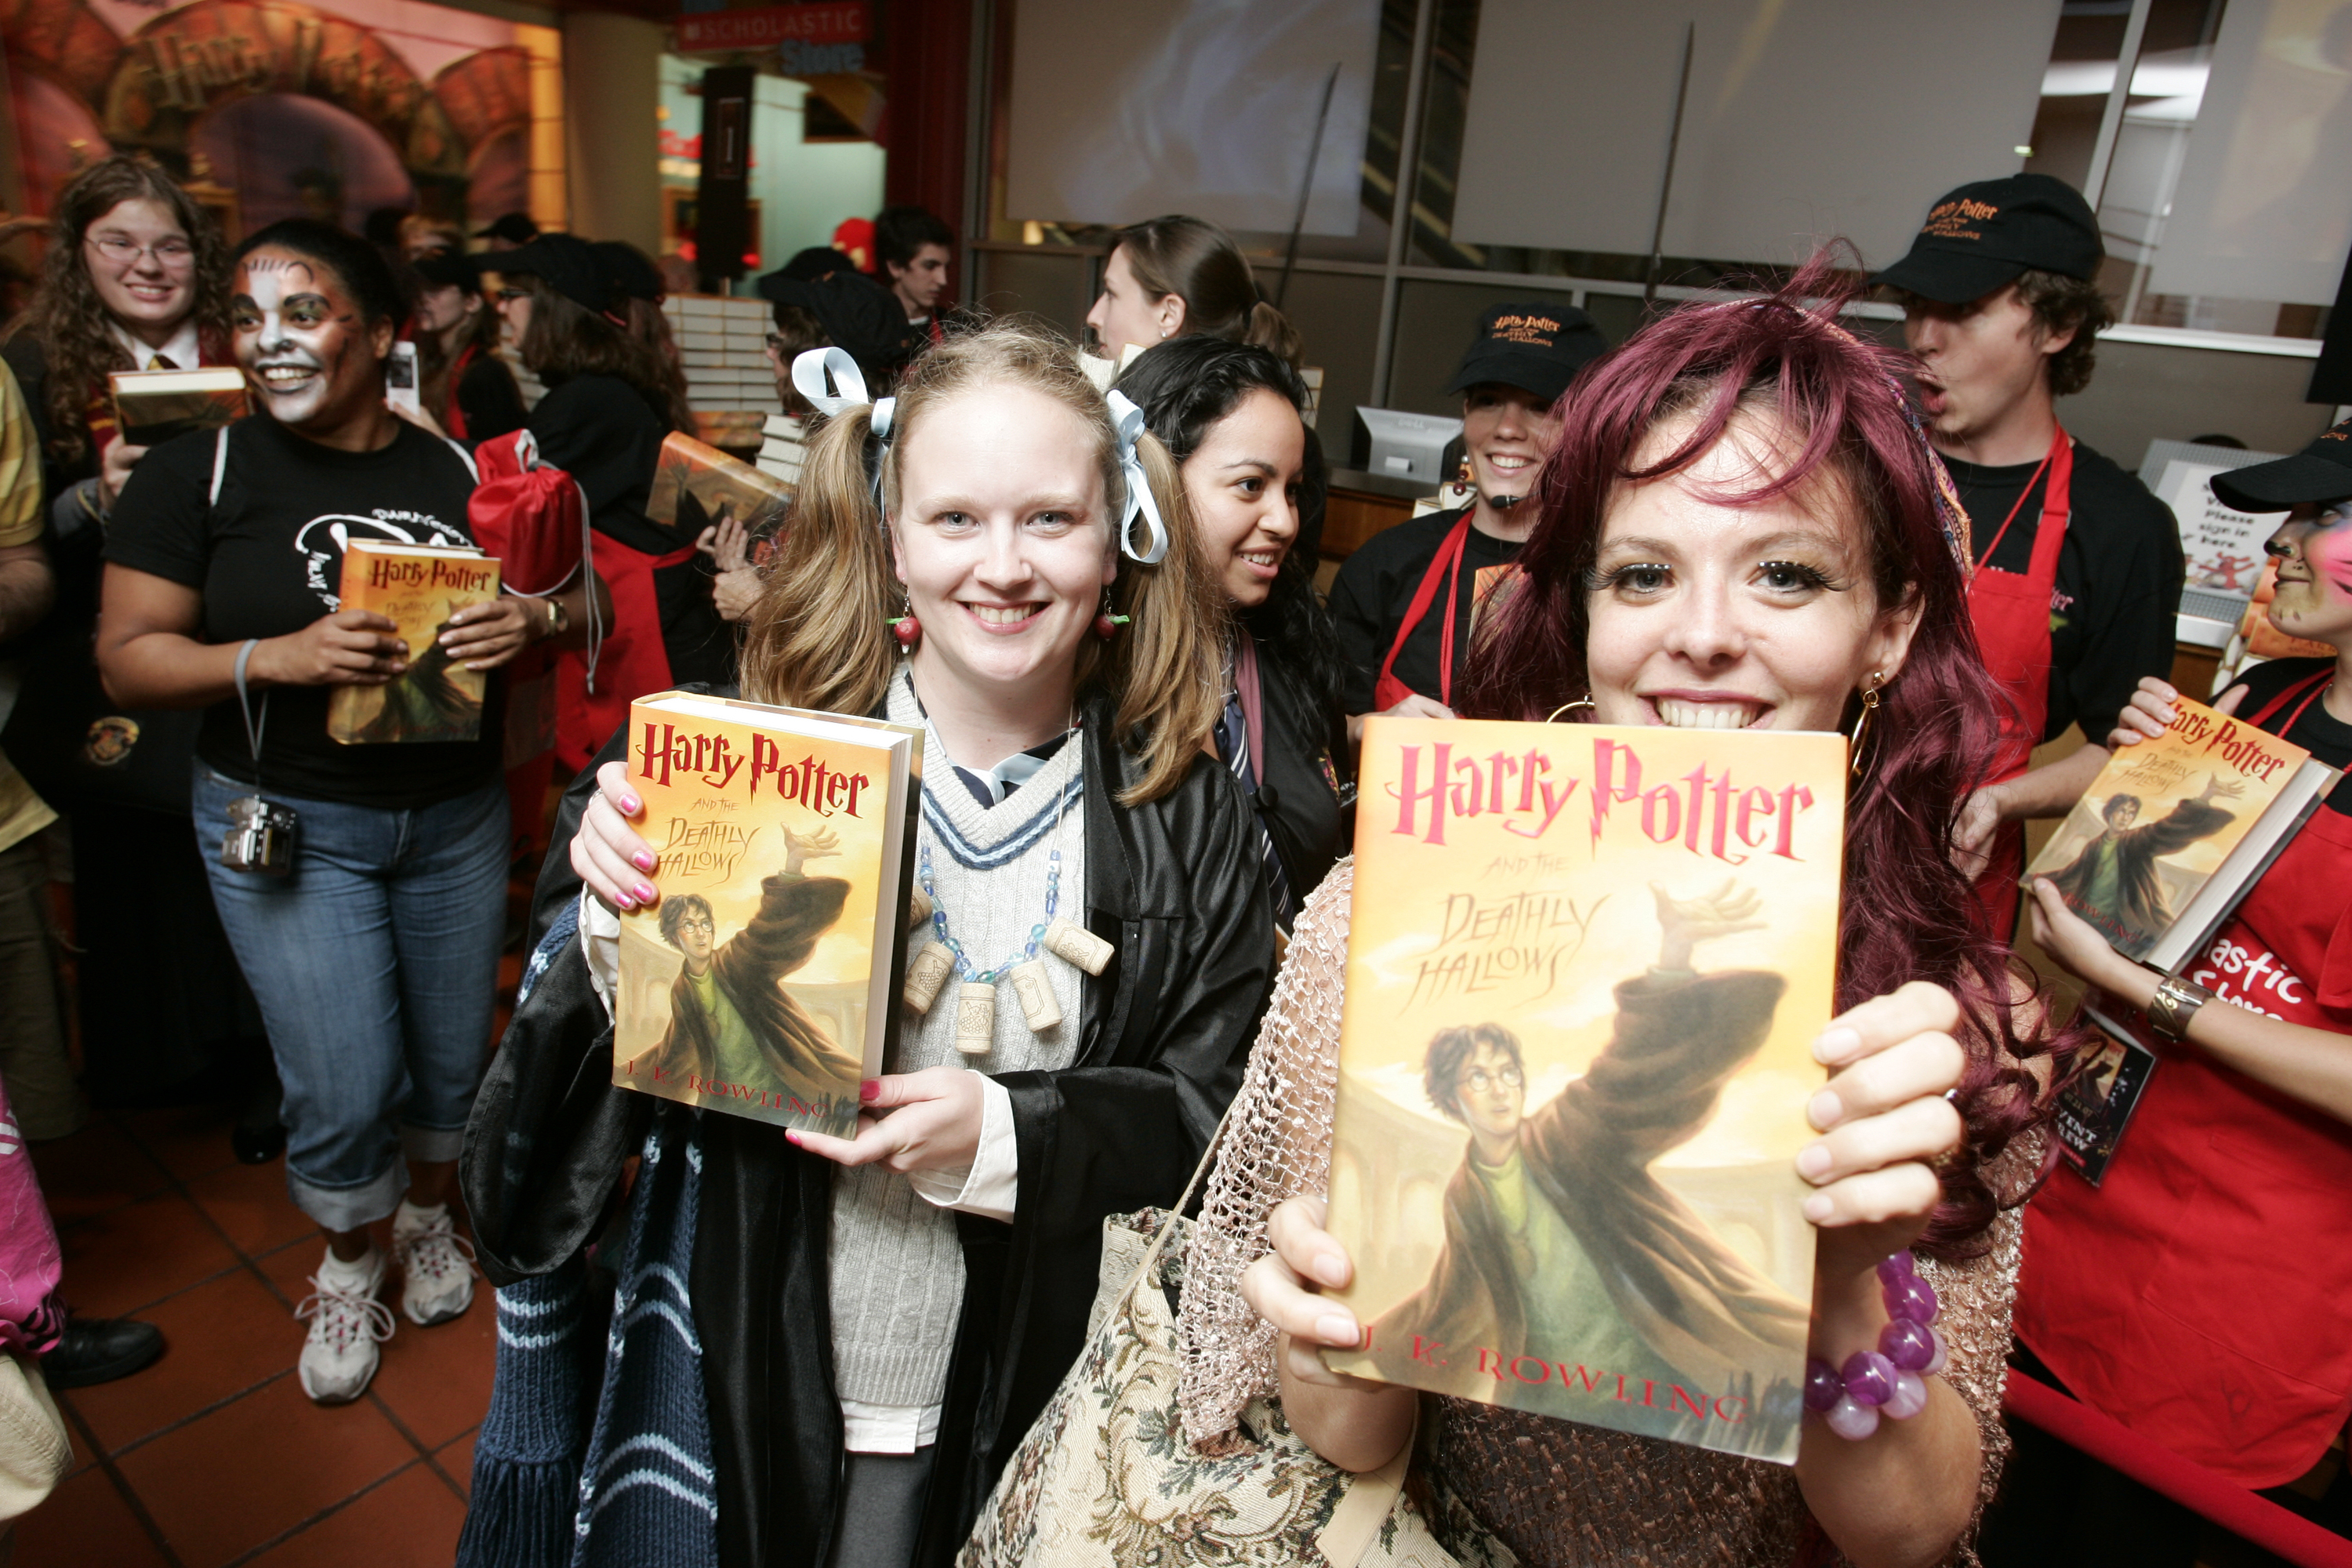 Adult Harry Potter Fans Have Created Their Own Grown-Up Fan Culture